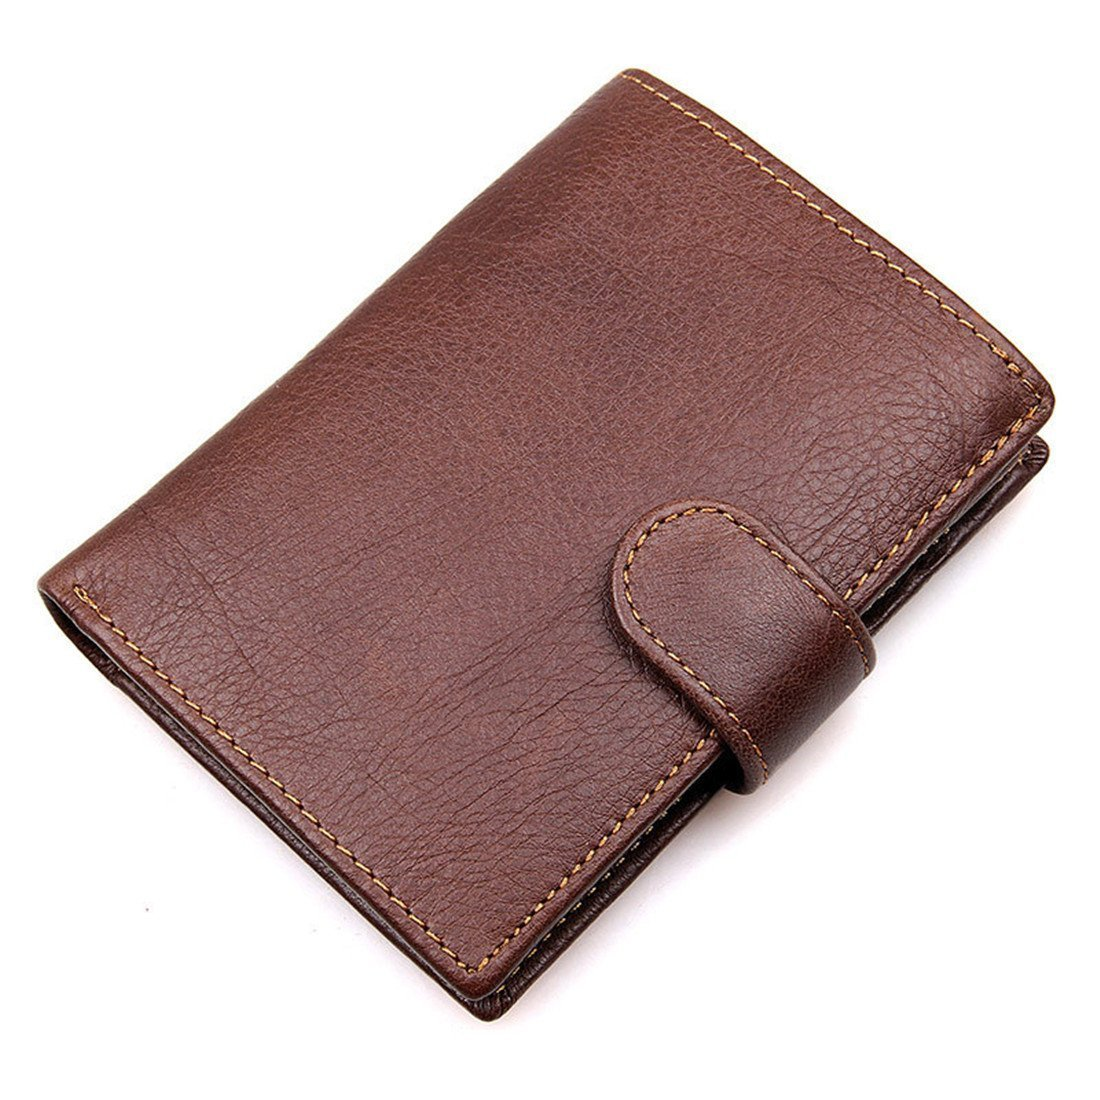 10bdad68acce Amazon.com  HRS Wallets for Men - RFID Blocking Trifold Genuine Leather  Wallet With 3 ID Window (brown)  Clothing